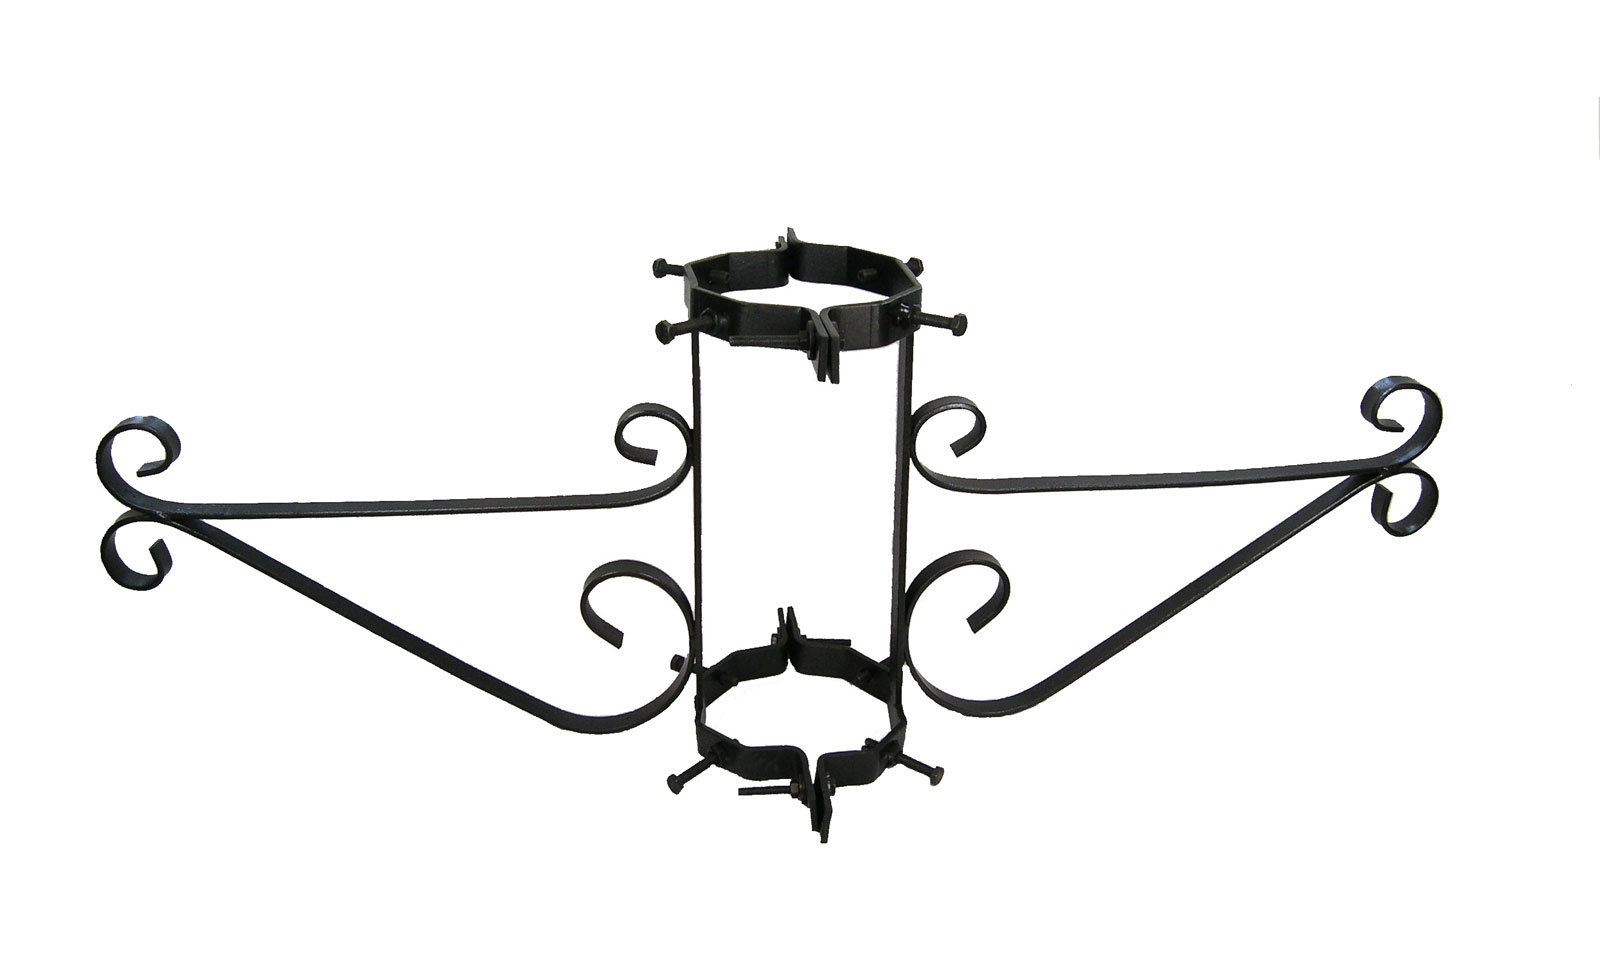 Lamppost Bracket For Double Hanging Baskets For Poles 5